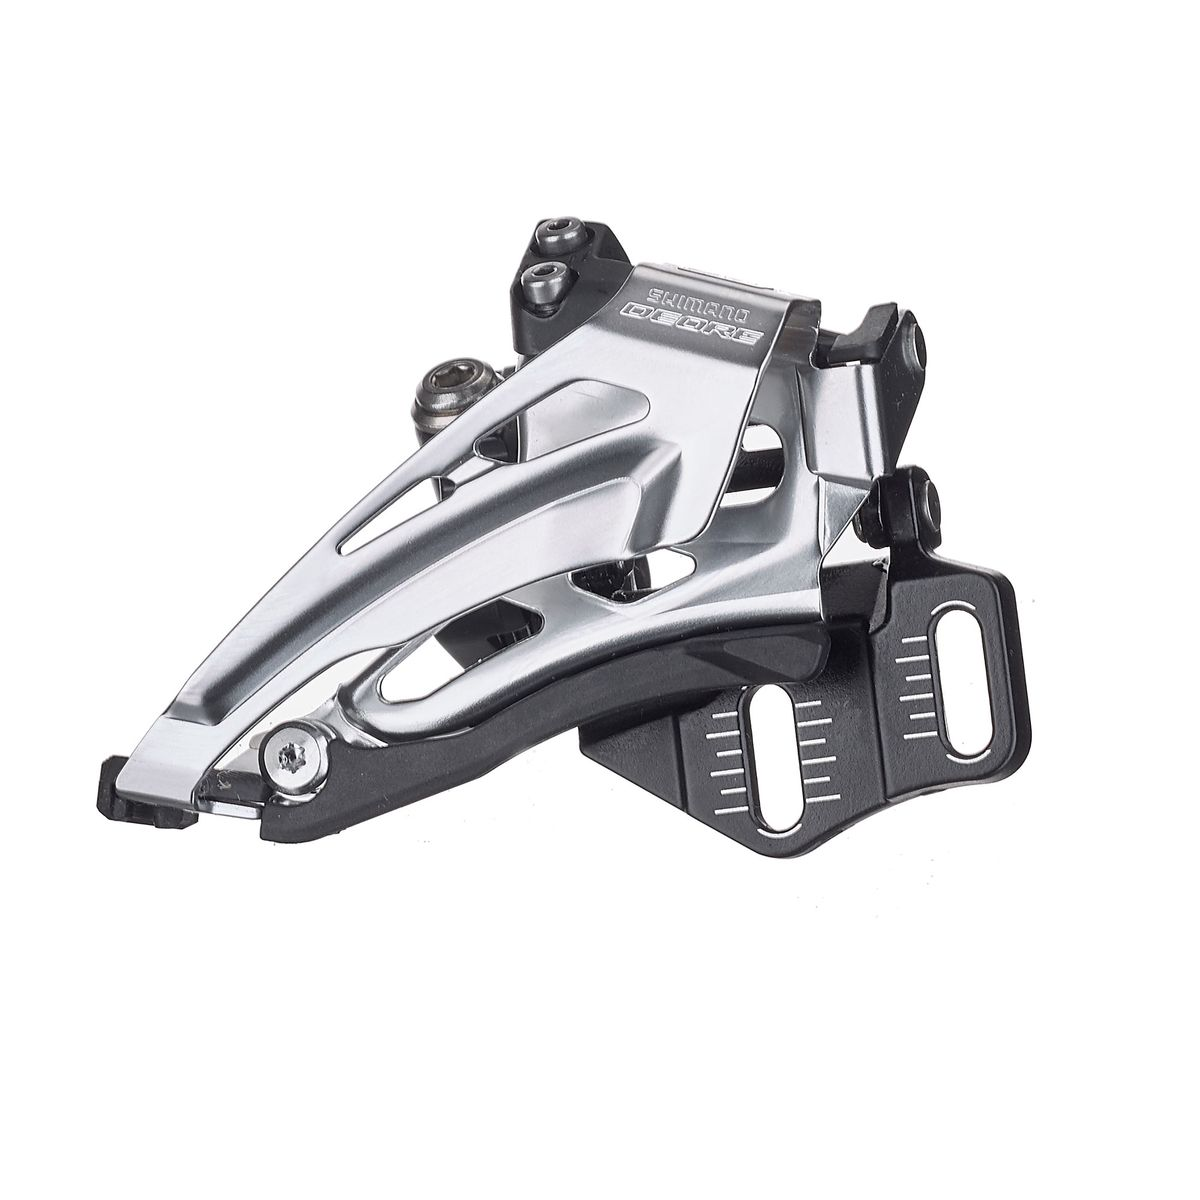 Deore FD-M6025-E Direct Mount Top Swing front derailleur